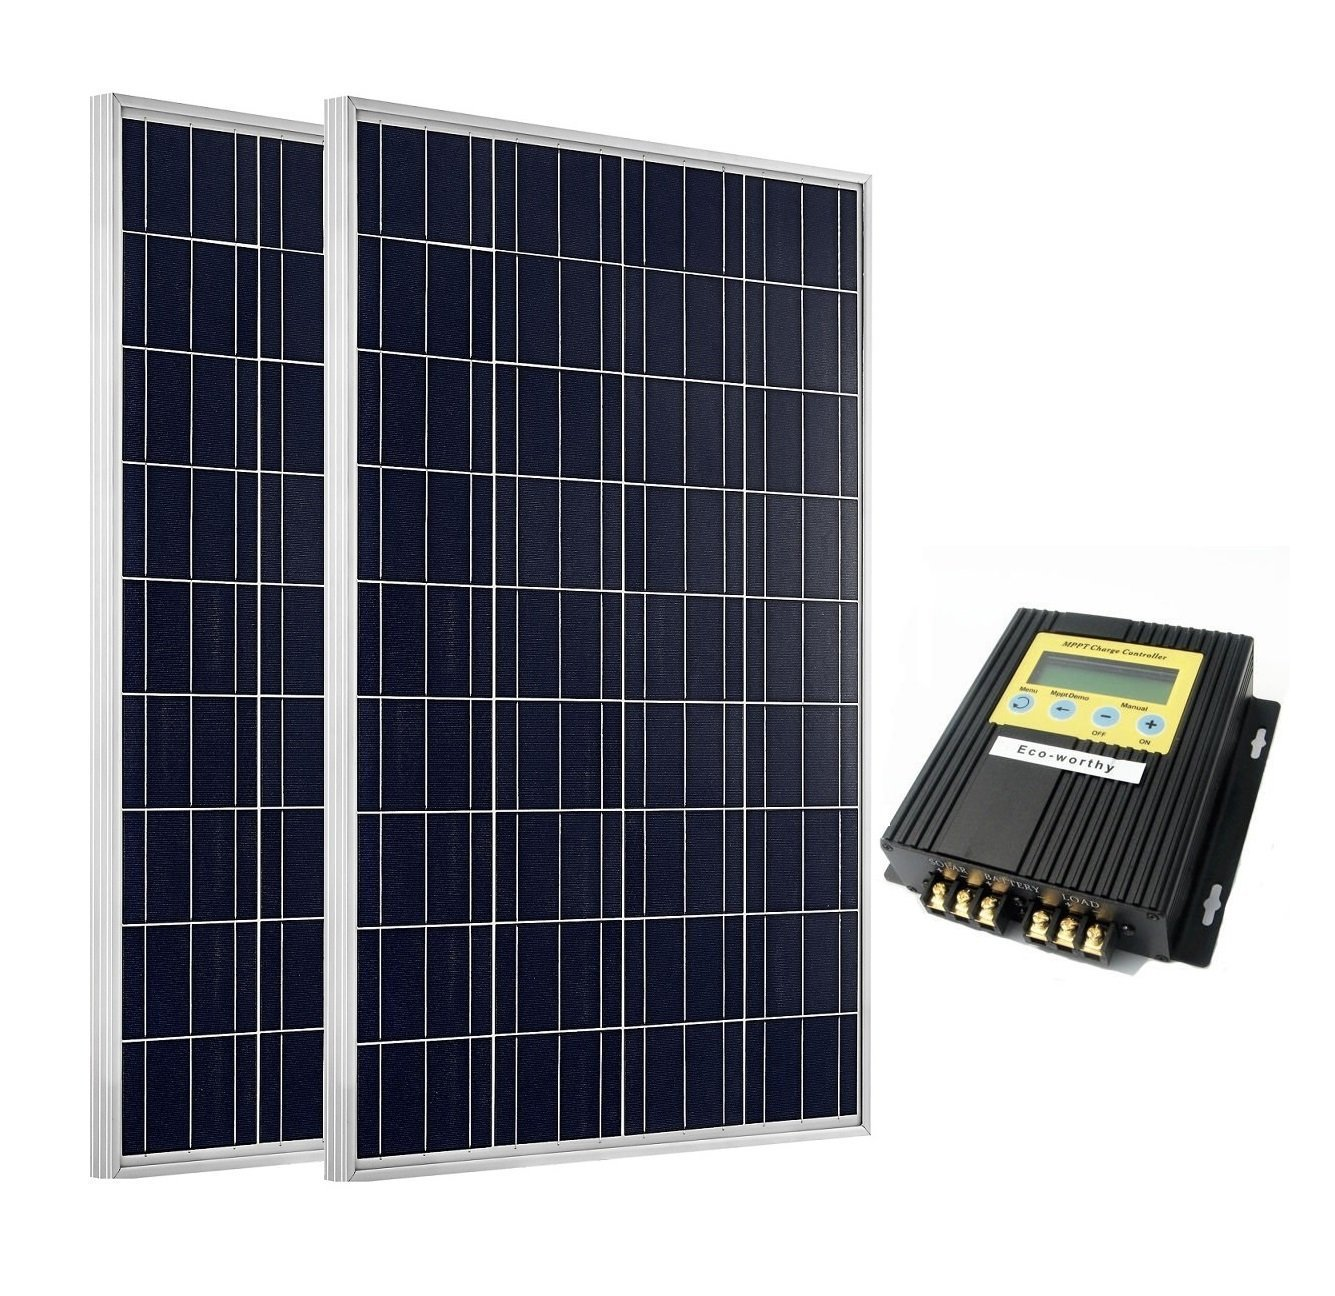 ECO-WORTHY 2 x 100Watt Poly Solar Panel Kit with 20A MPPT Controller for RV Boat Home Charger